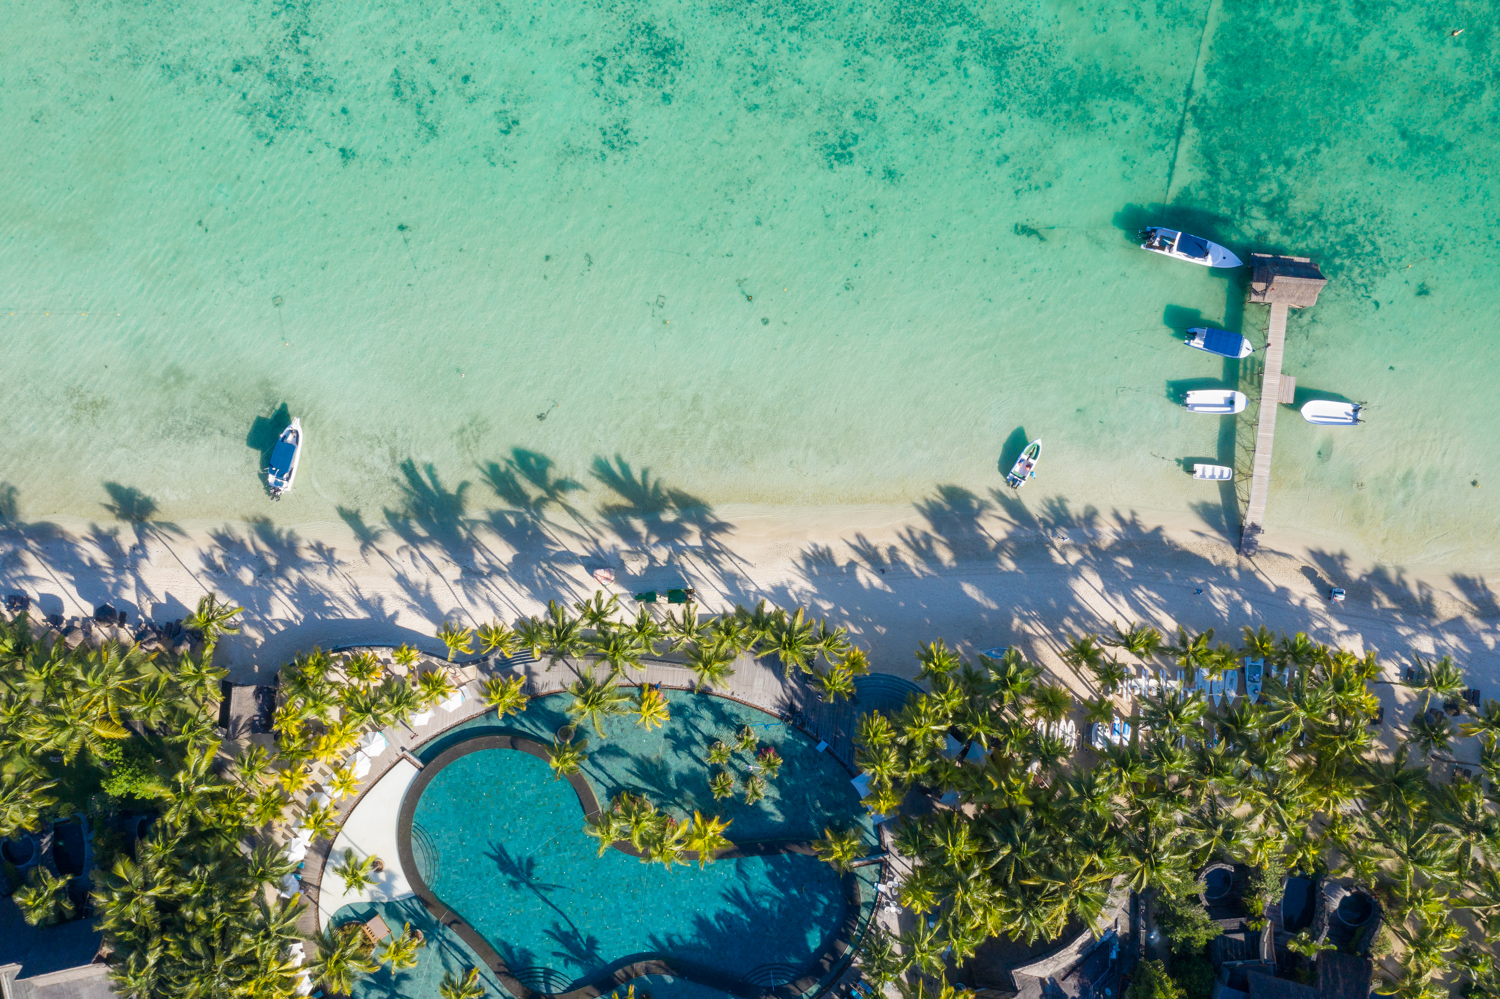 Hotel shoot for the Beachcomber group, Mauritius, by Peter Jackson